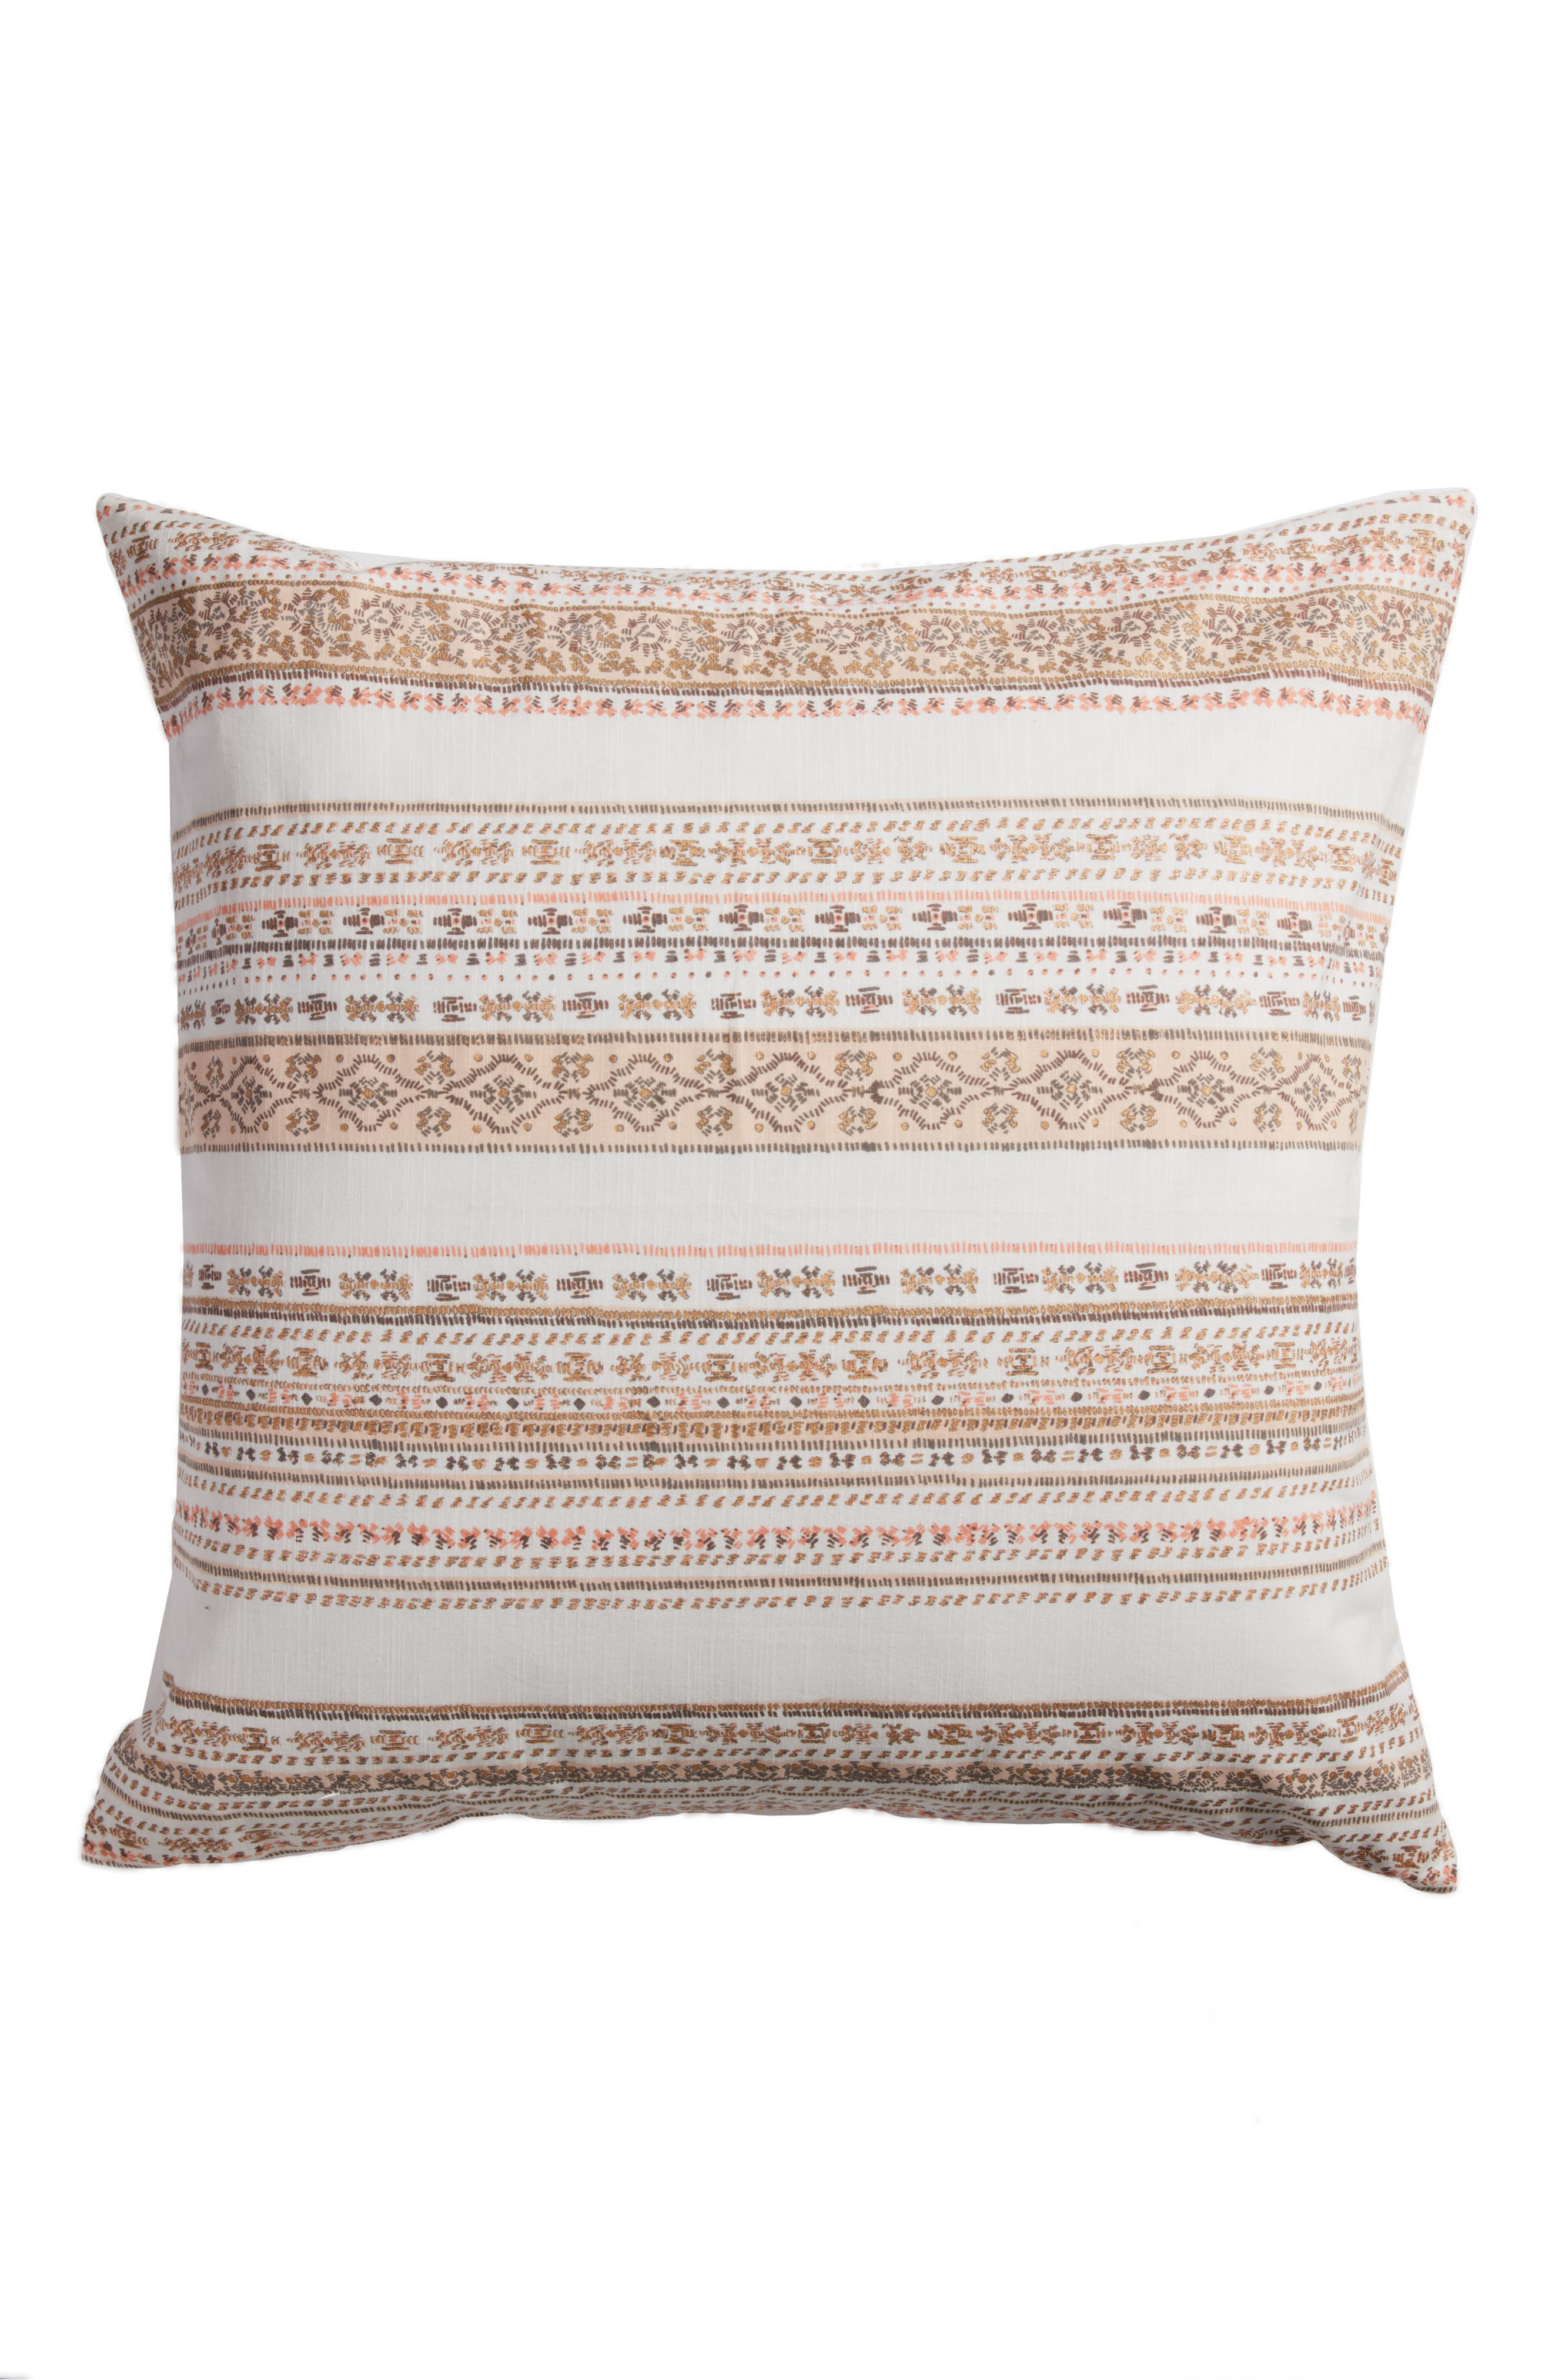 Nordstrom at Home Malia Accent Pillow